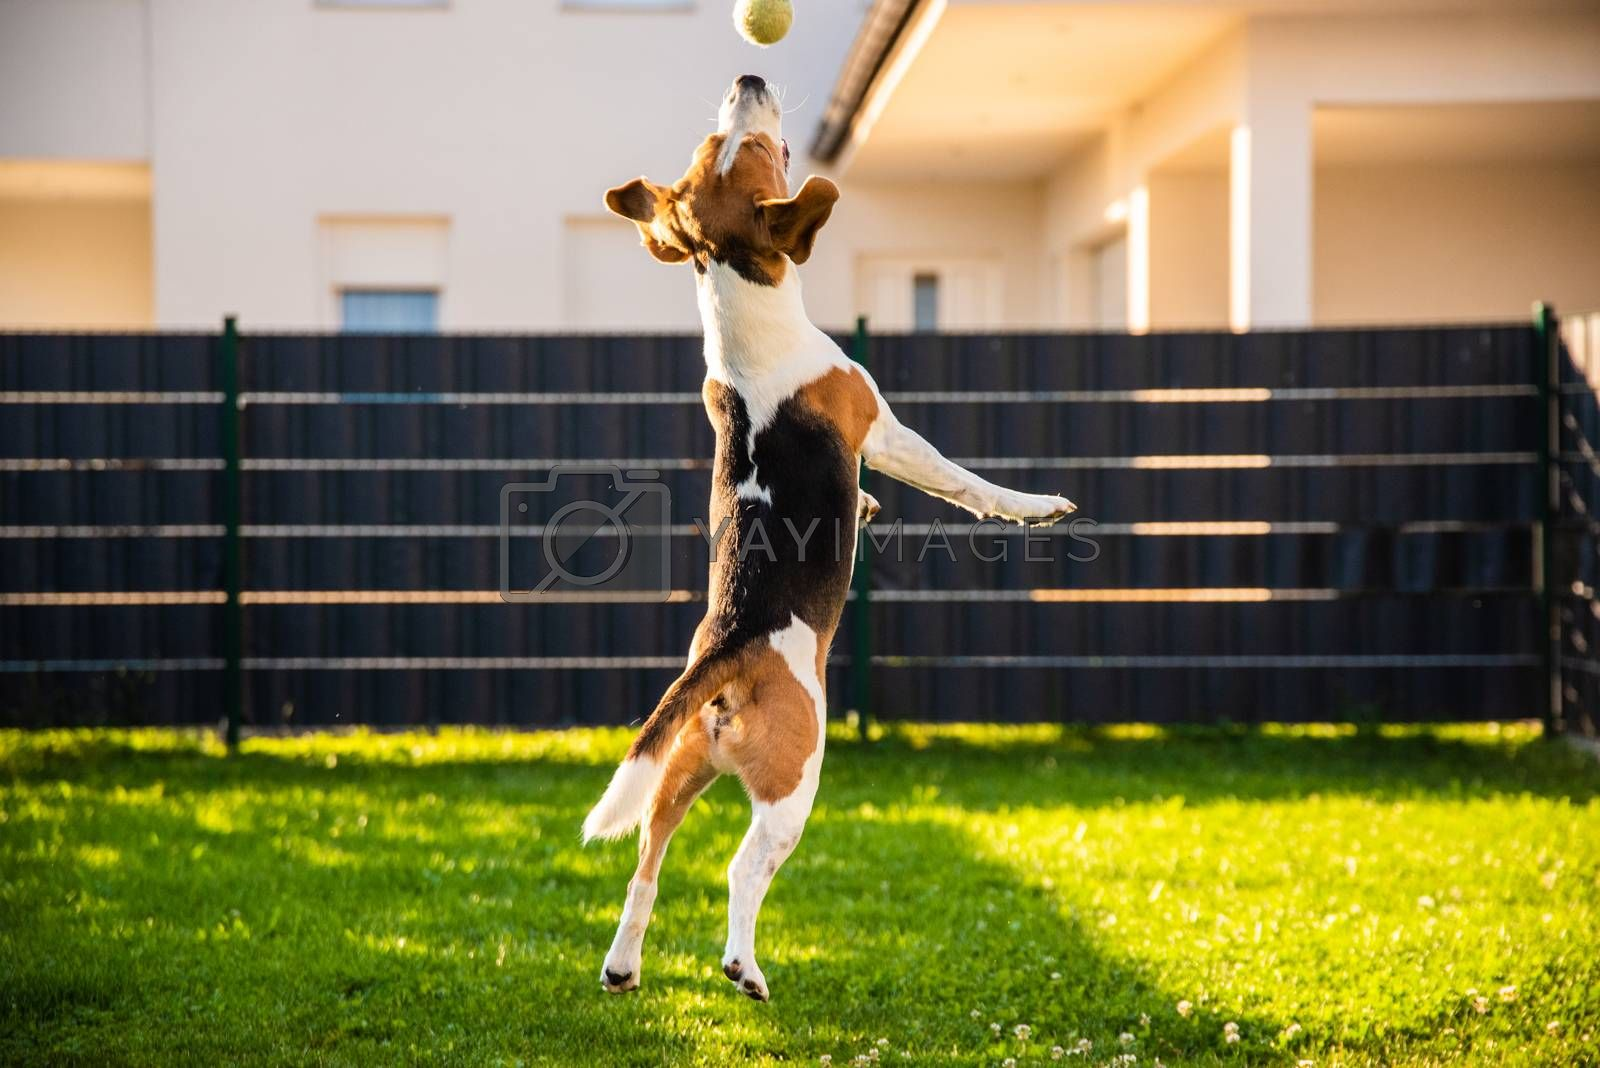 Beagle dog jumping and playing with a ball in green garden park, having lots of fun